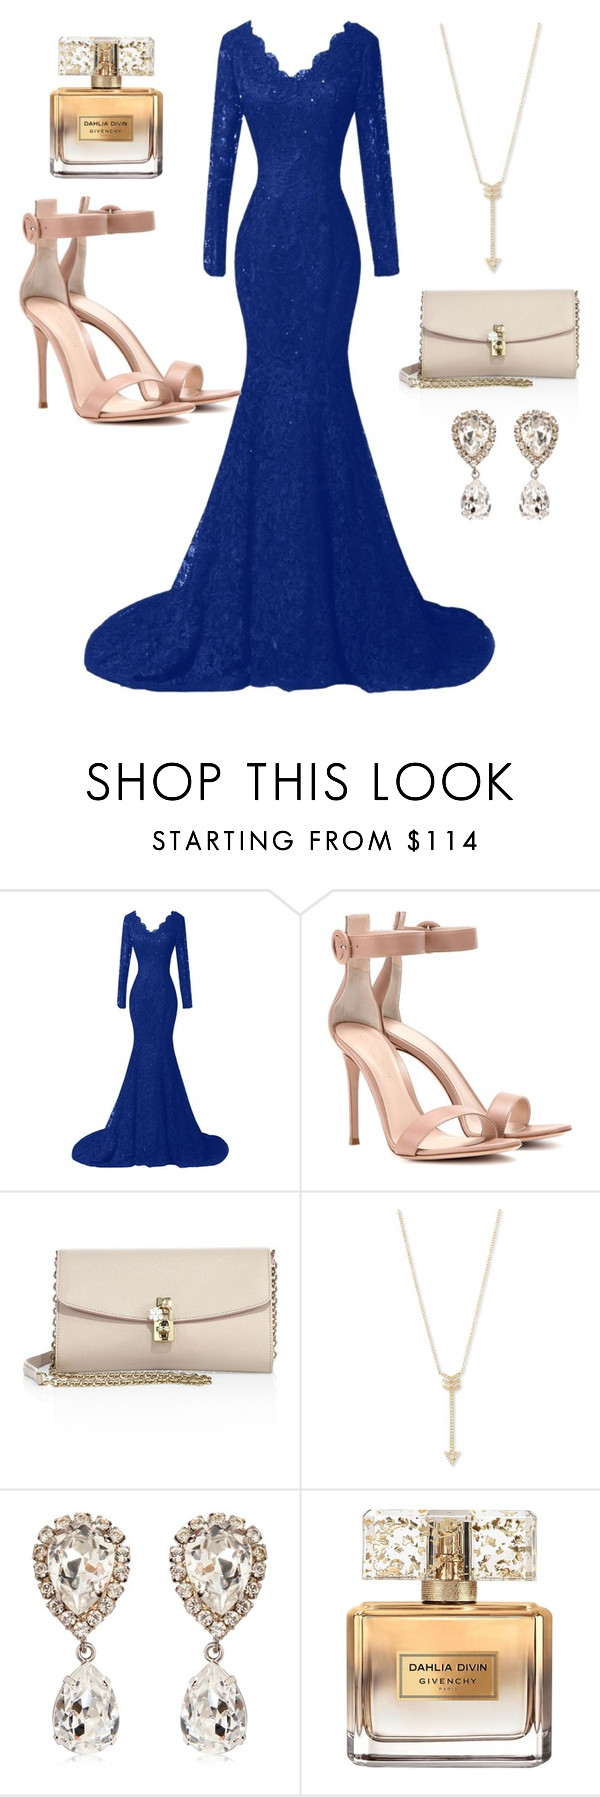 """Untitled #555"" by vane-25 ❤ liked on Polyvore featuring Gianvito Rossi, Dolce&Gabbana, EF Collection and Givenchy"